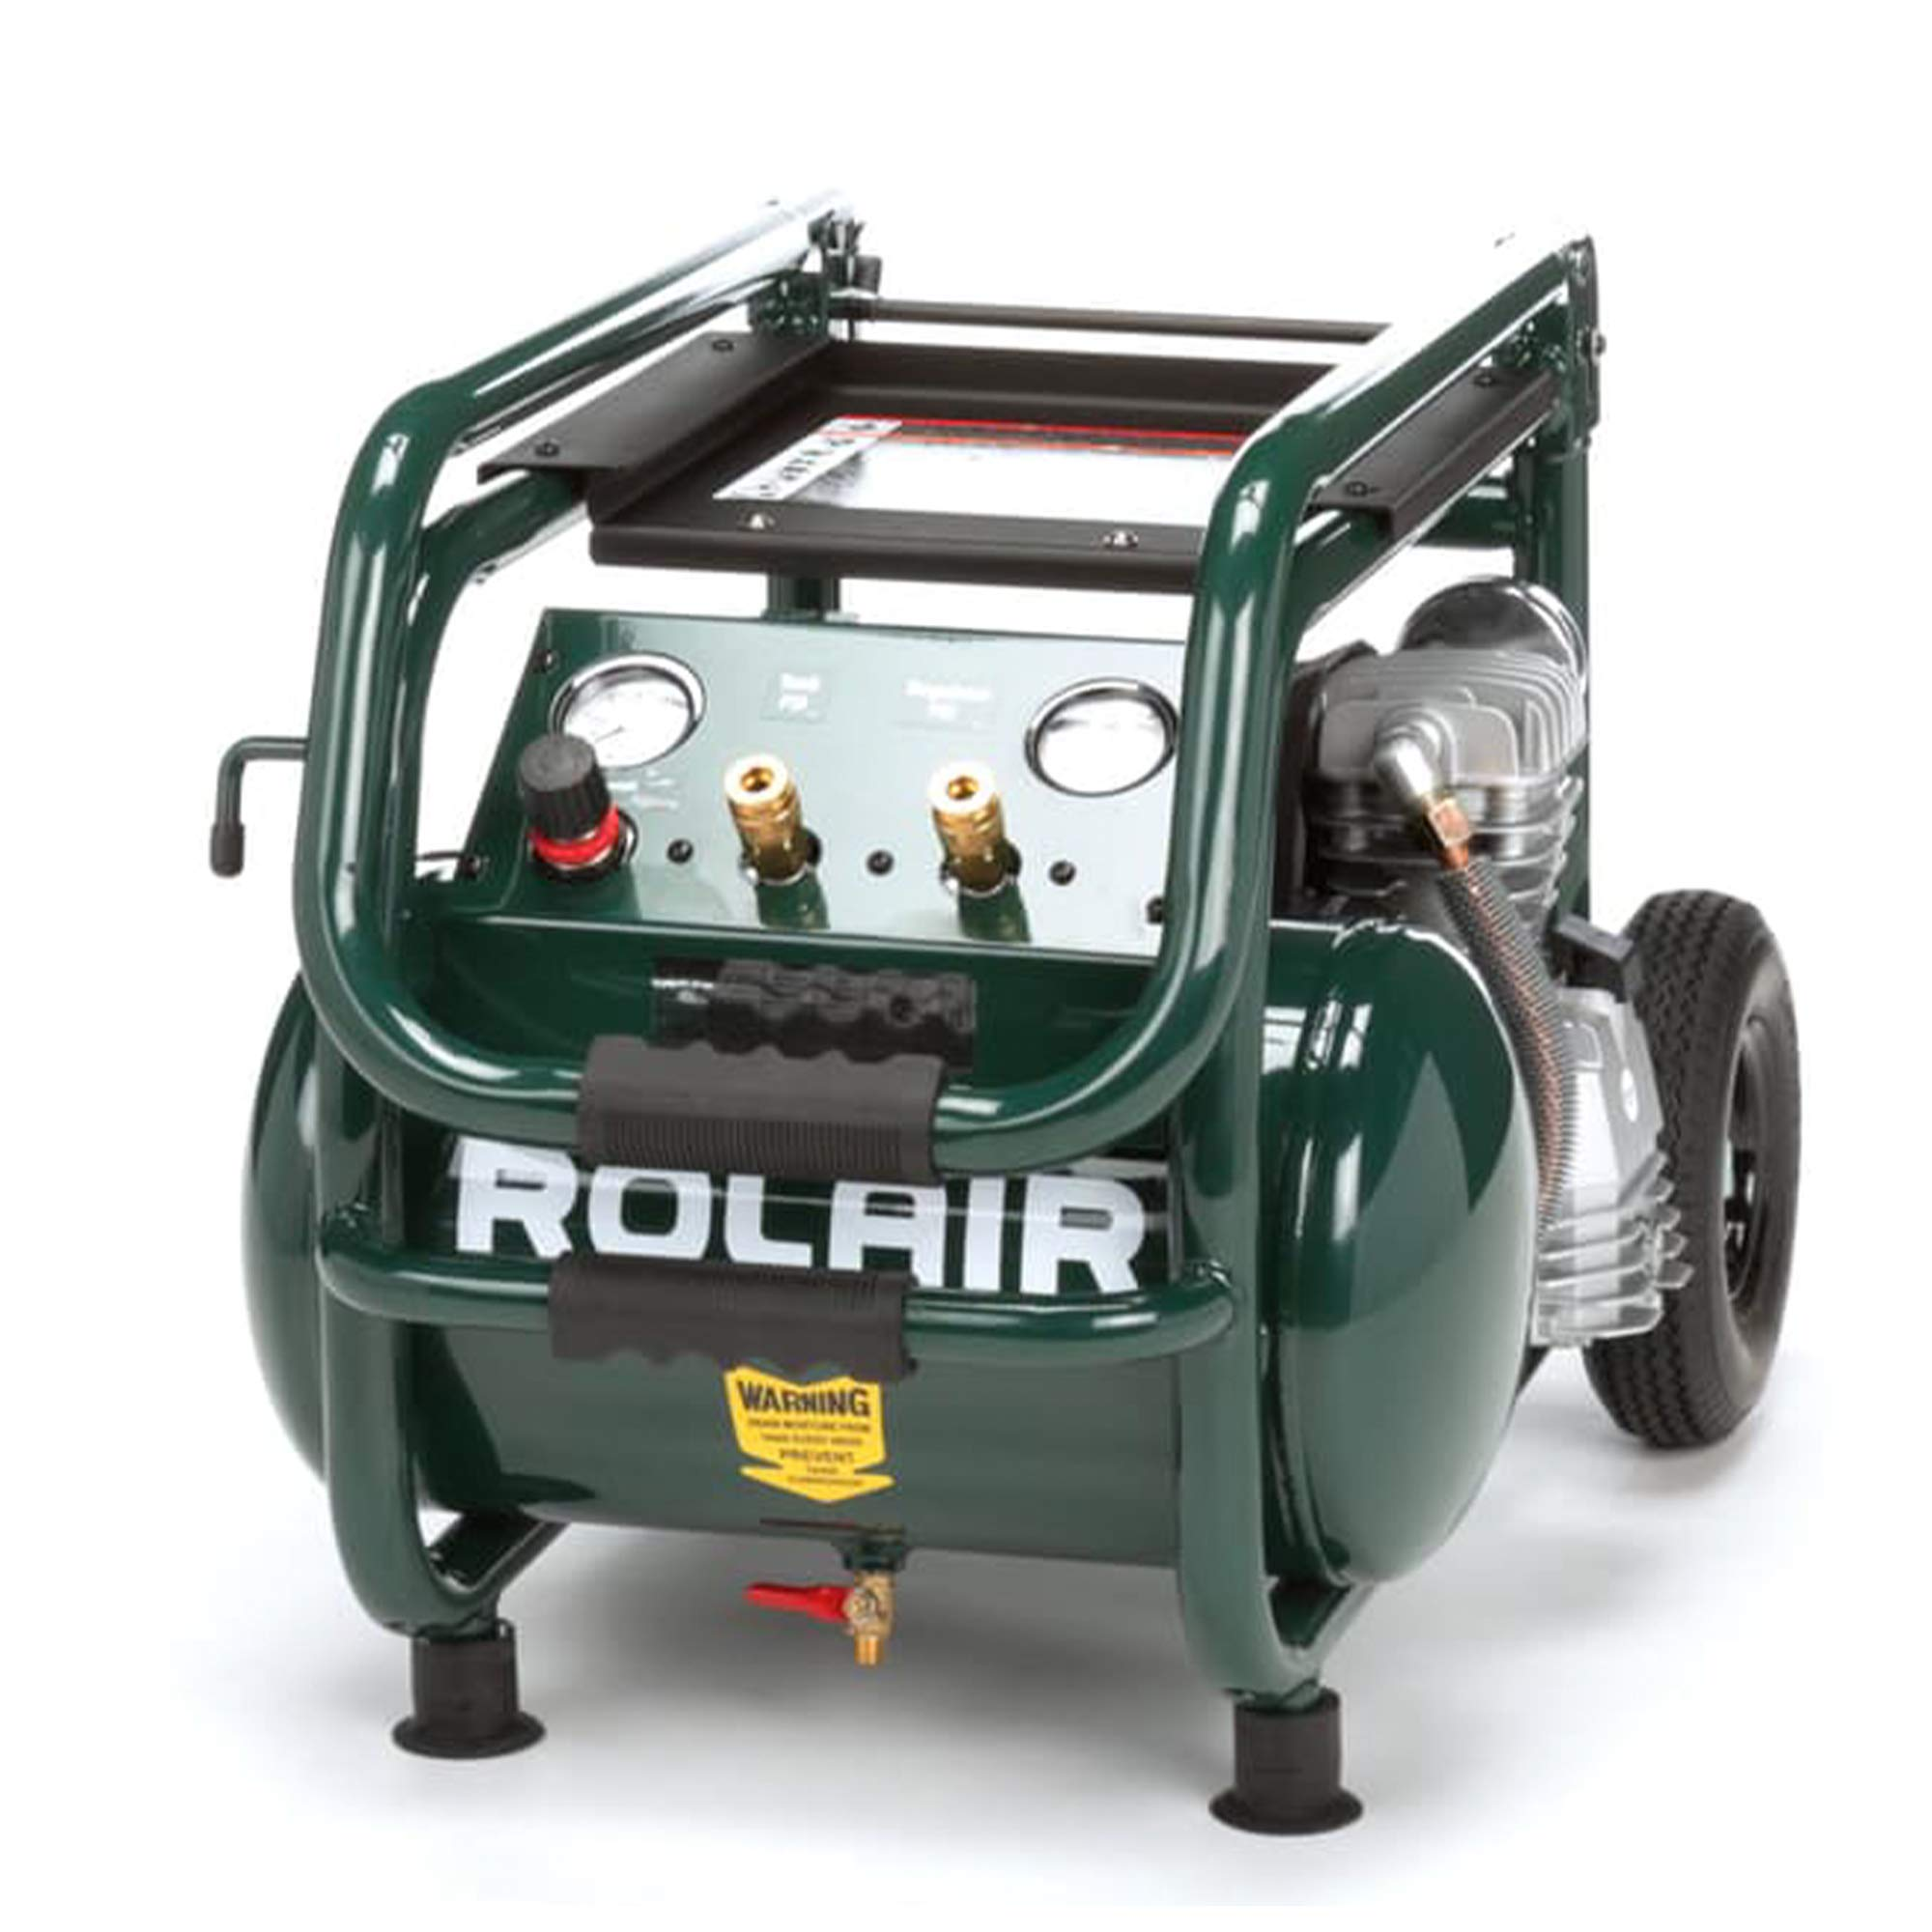 Rolair VT25BIG 2.5 HP Wheeled Compressor with Overload Protection and Manual Reset by Rolair